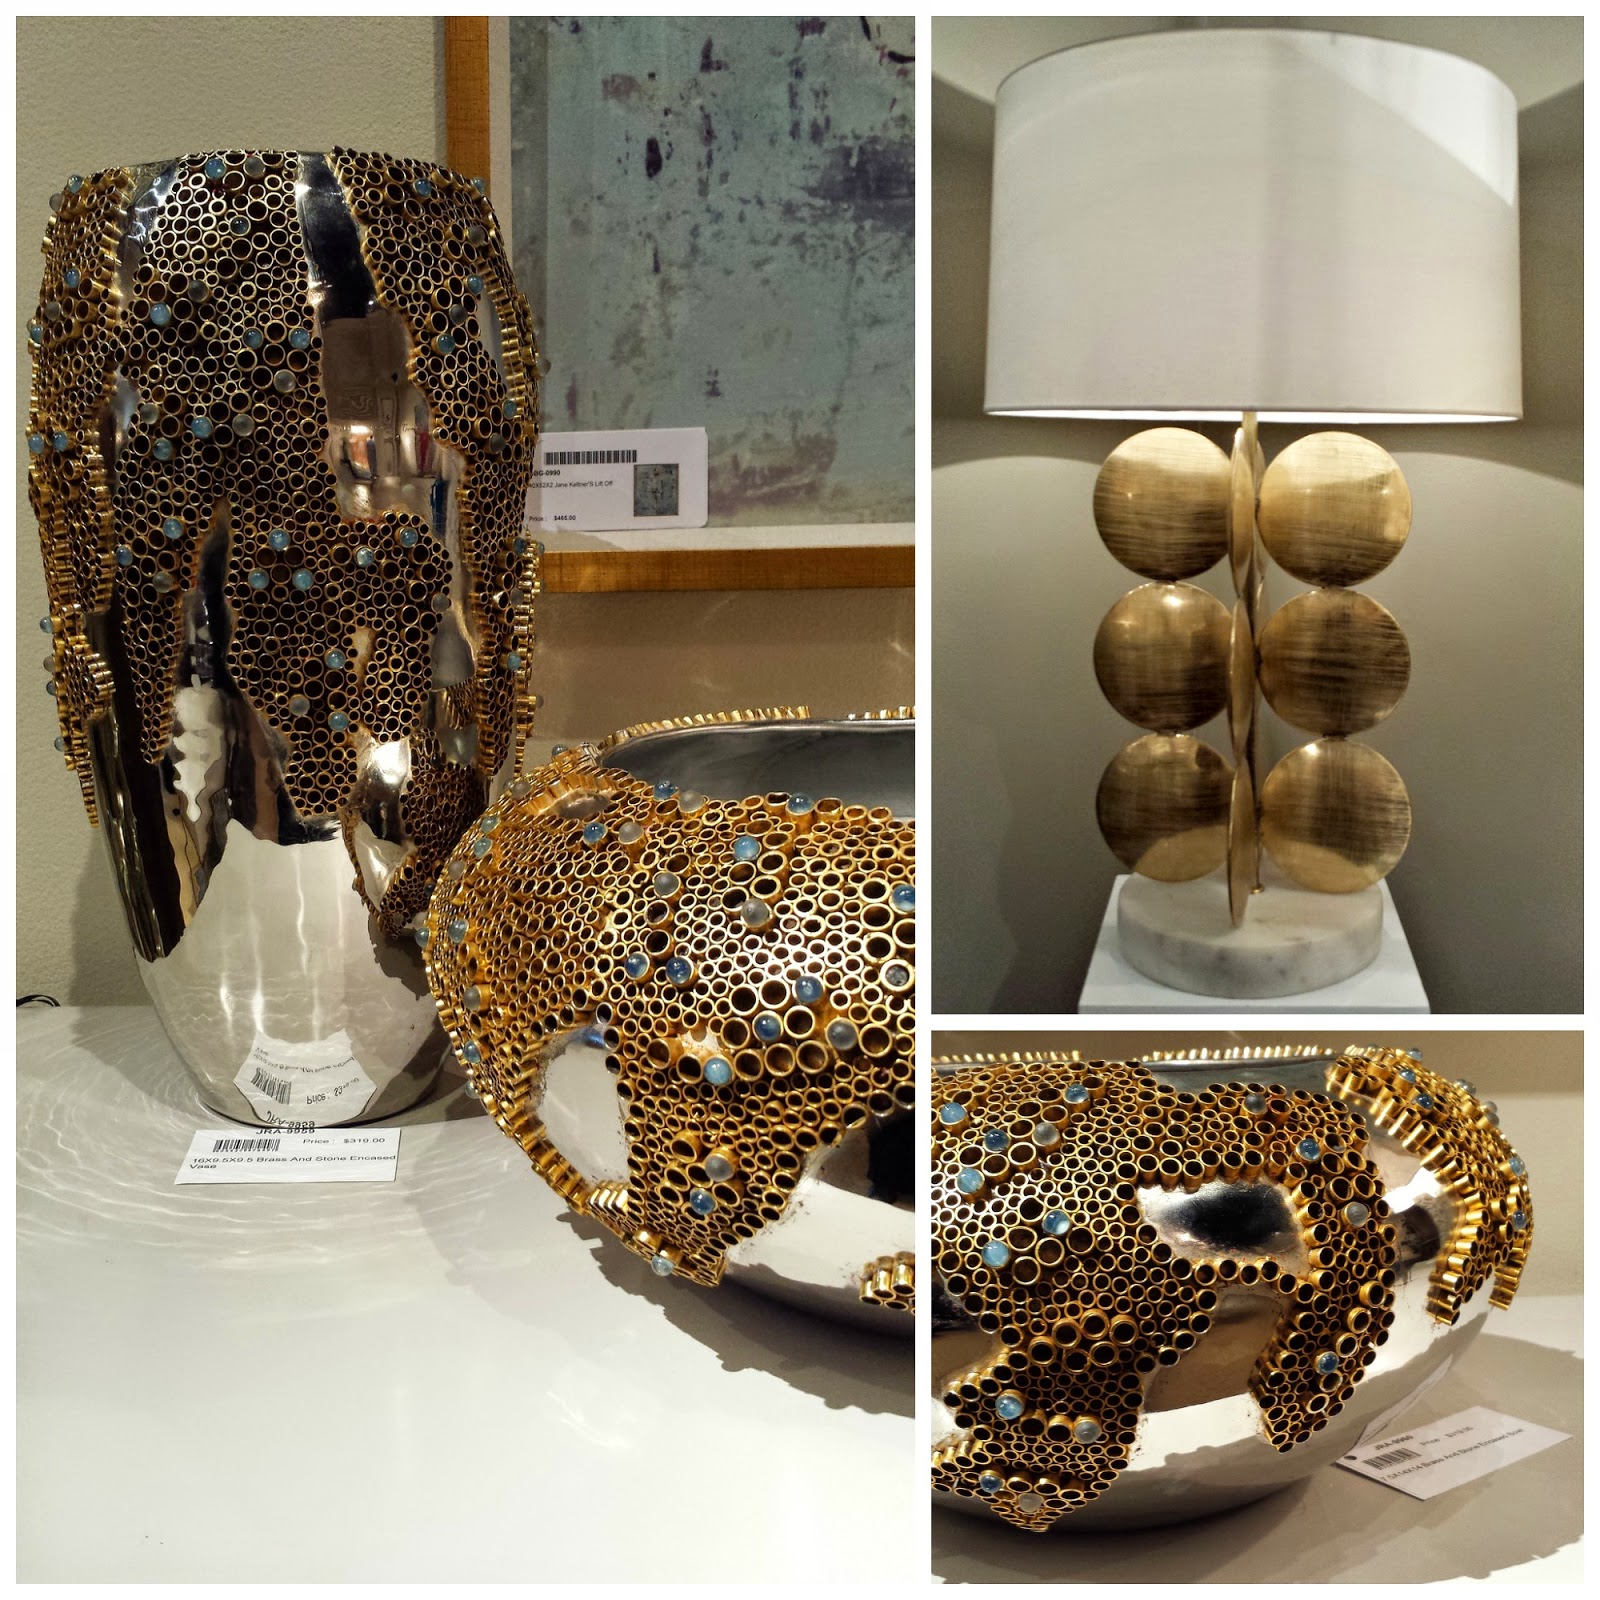 Focal point styling hpmkt design blogger tour john richard mixed metals and materials arubaitofo Gallery